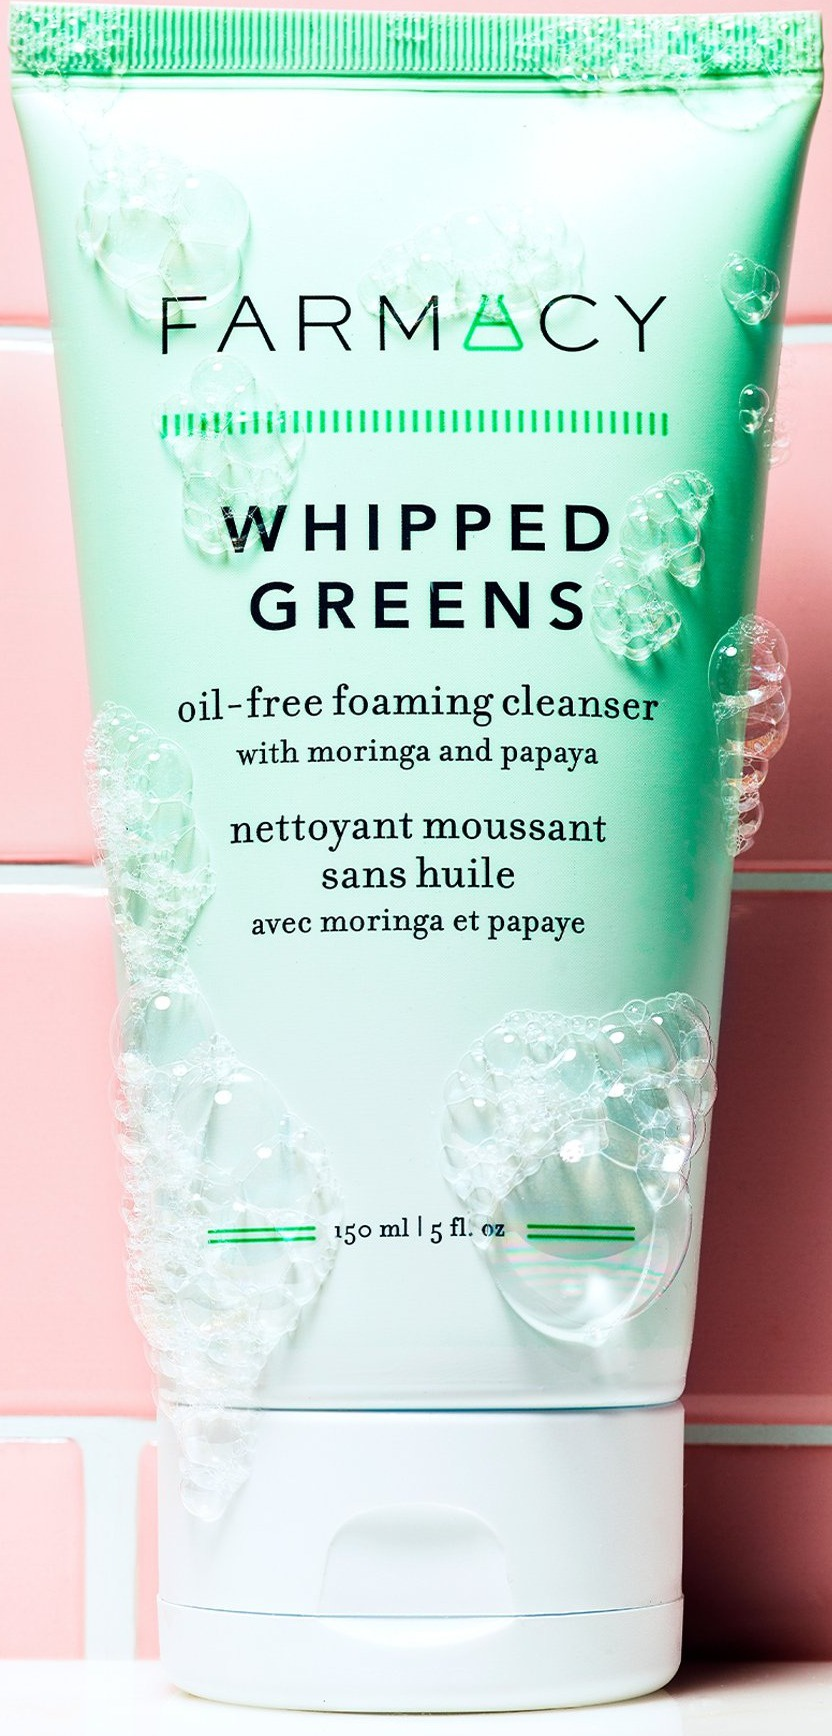 Farmacy Whipped Greens Cleanser